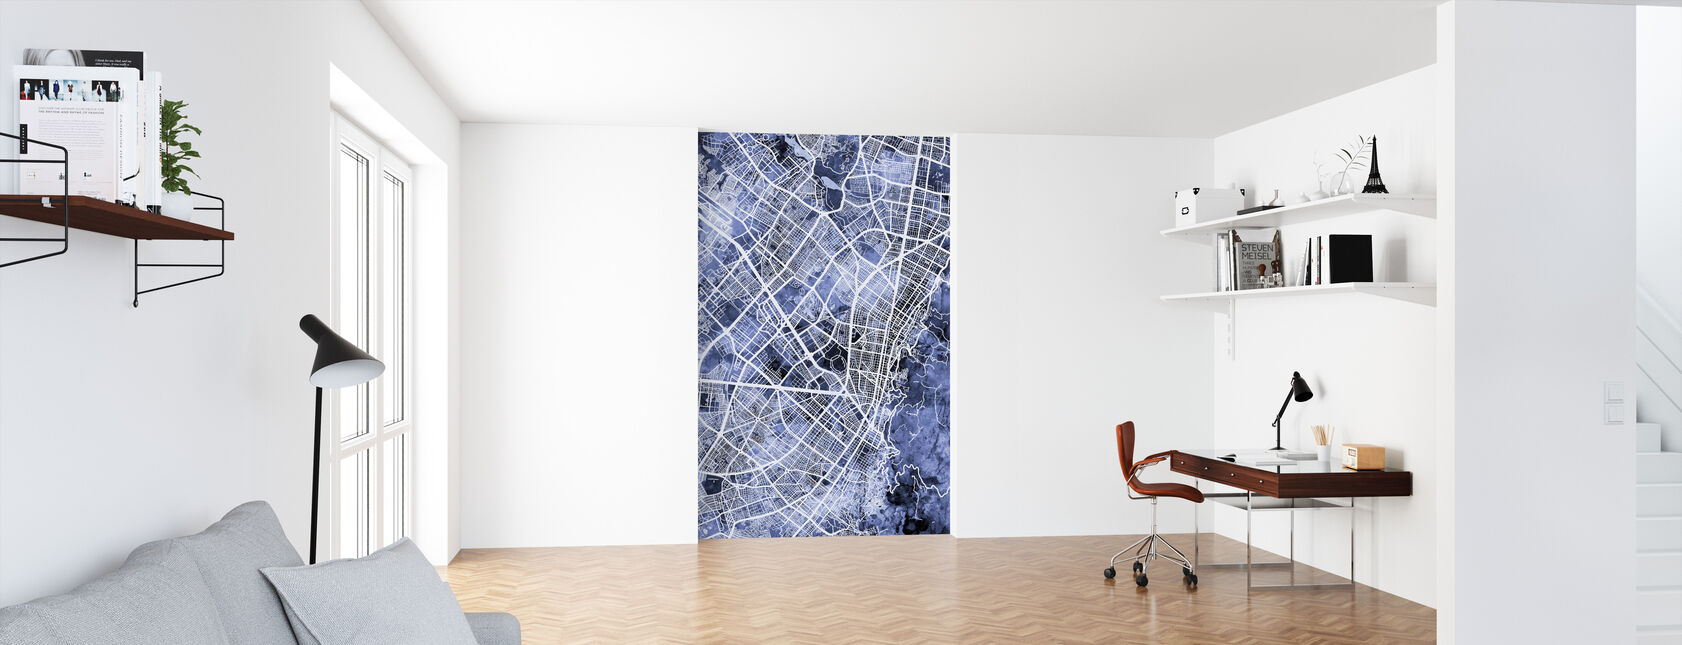 Bogota Colombia City Map - Wallpaper - Office